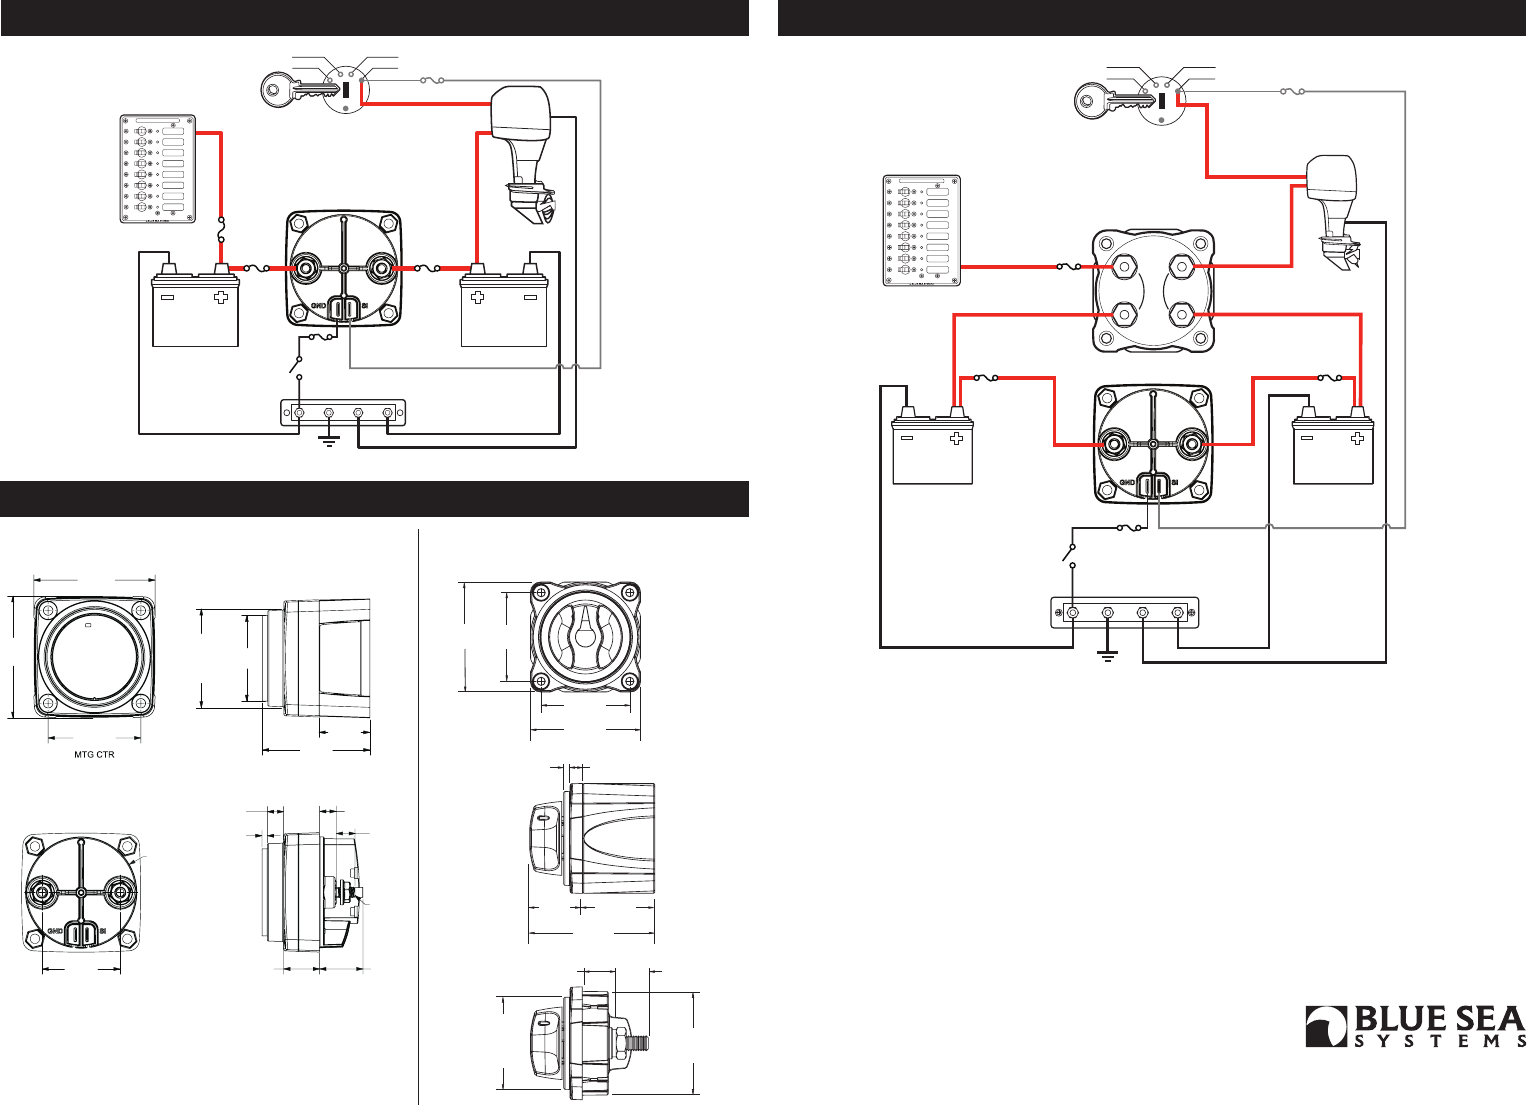 698b66bd 7897 4fe8 89cb 6270acd04f78 bg2 page 2 of blue sea systems stereo system m acr 7601 user guide on blue sea 7601 wiring diagram